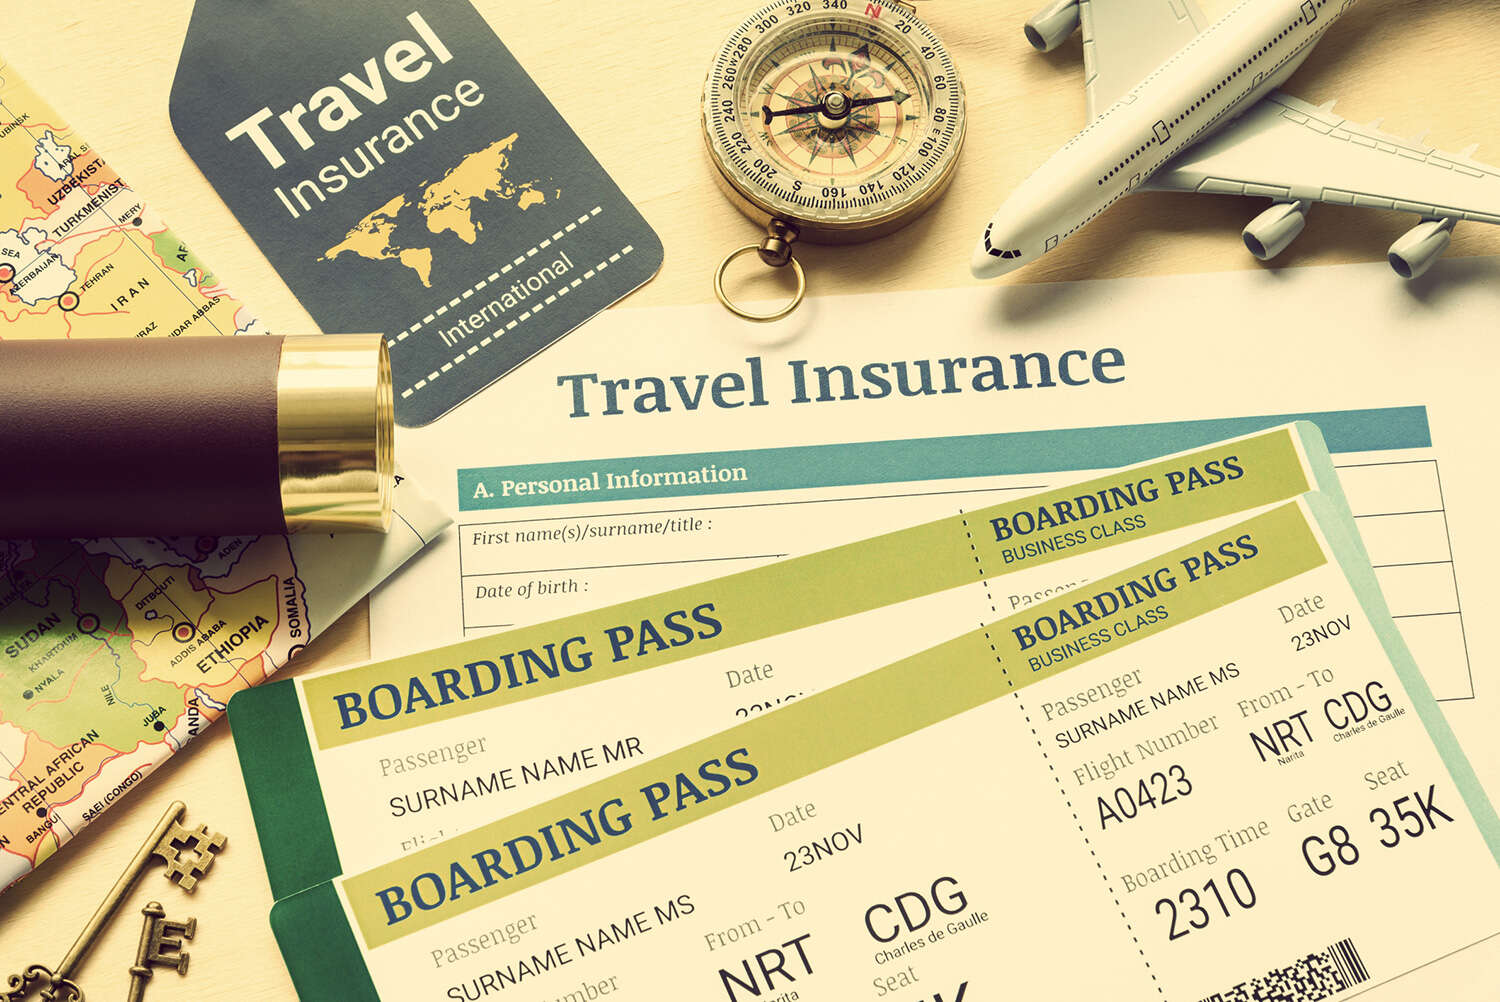 https://www.cruisenet.ca/blog/covid-19-pandemic-the-role-of-the-travel-agent-with-future-travel-vouchers-and-refunds-or-may-20